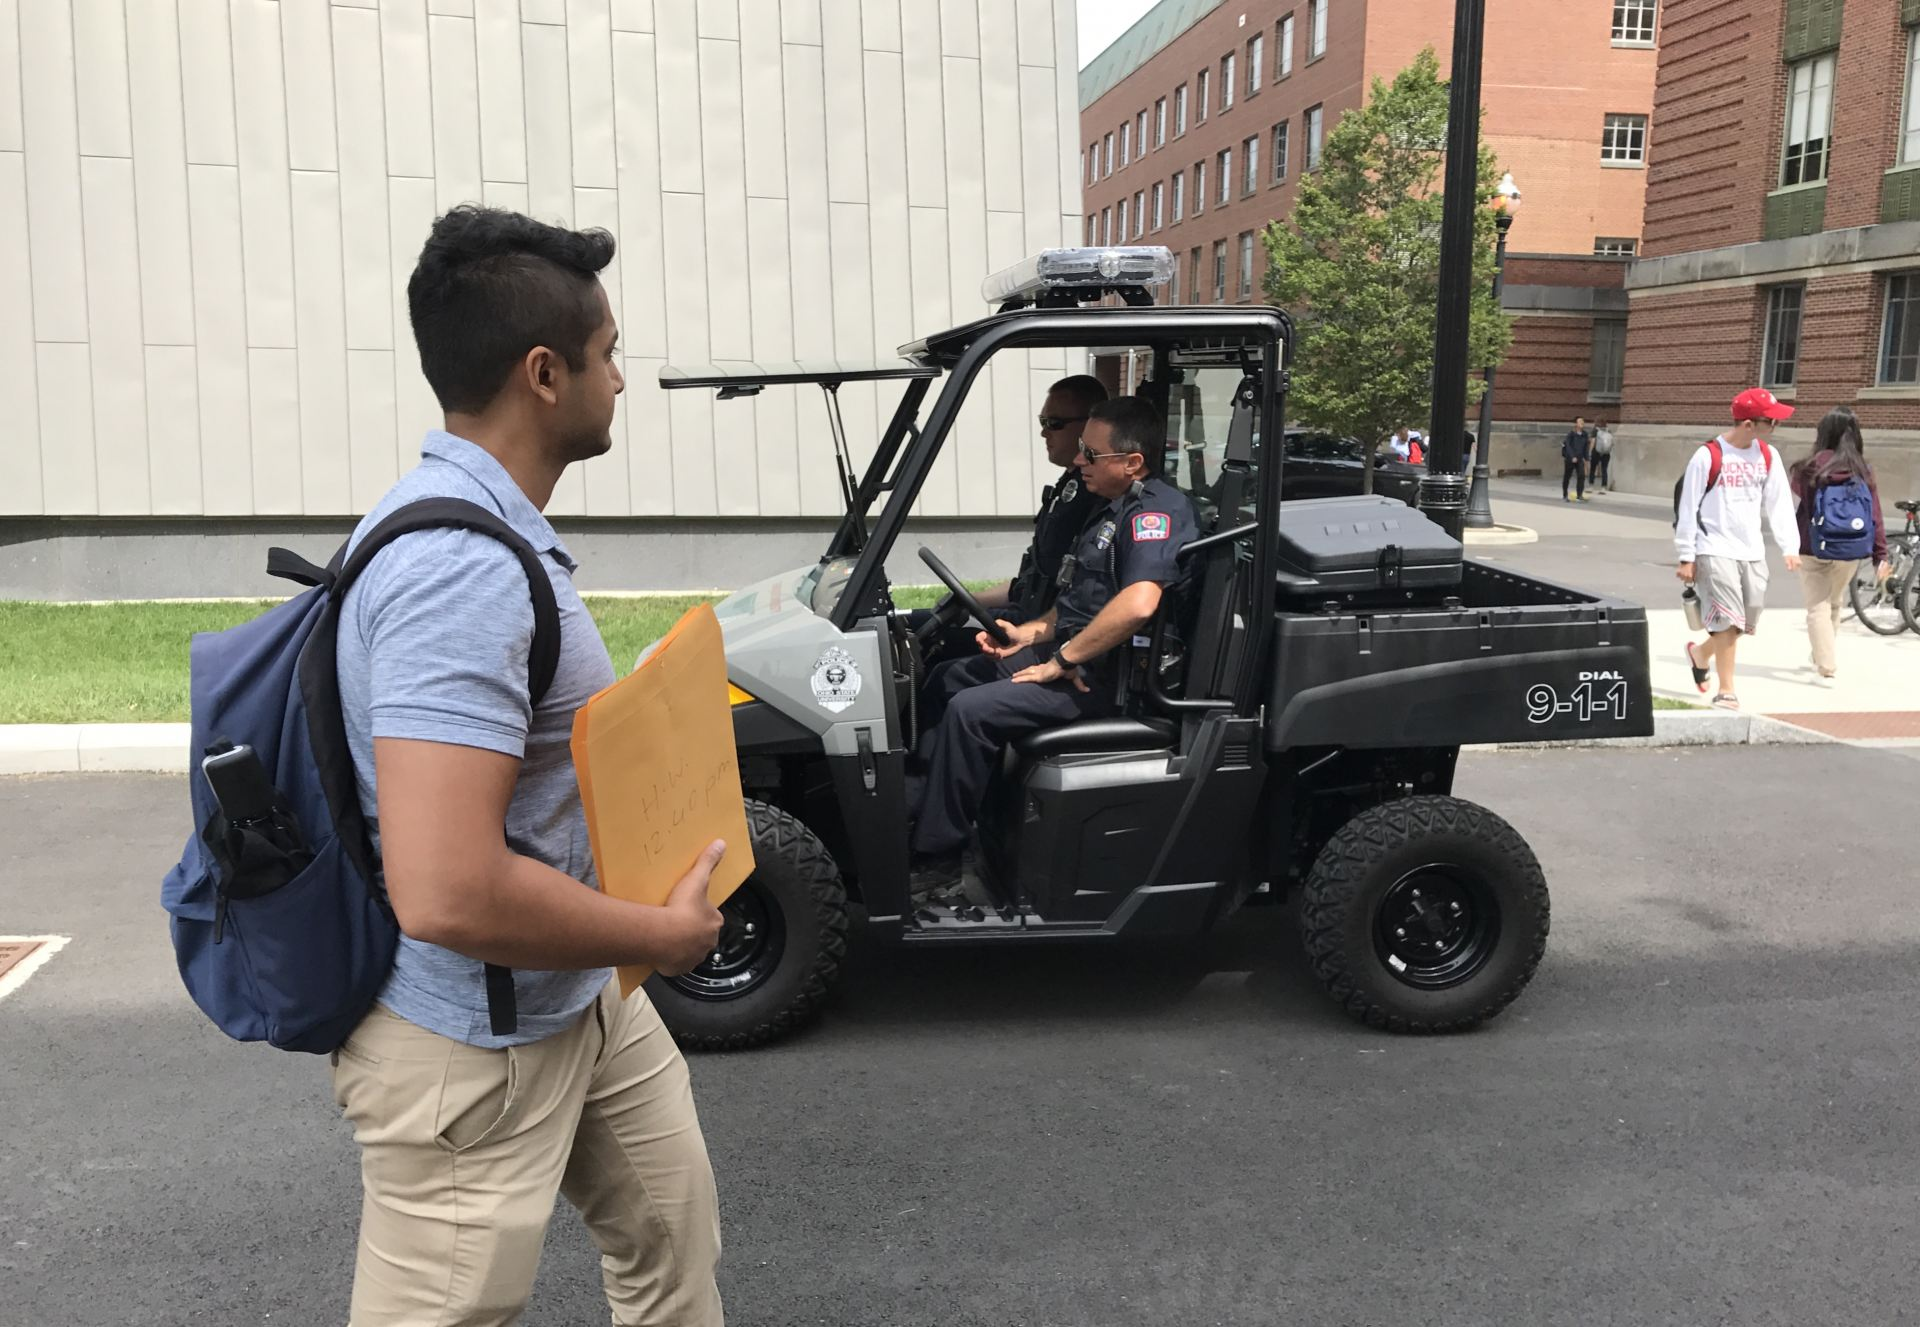 Ohio State University Police using golf cart-like vehicle in ... on golf cart best, golf cart california, golf cart hand, golf cart head, golf cart back, golf cart movie, golf cart large, golf cart red, golf cart front, golf cart game, golf cart step, golf cart fast, golf cart real, golf cart modified, golf cart one, golf cart family, golf cart face, golf cart girl, golf cart light, golf cart king,